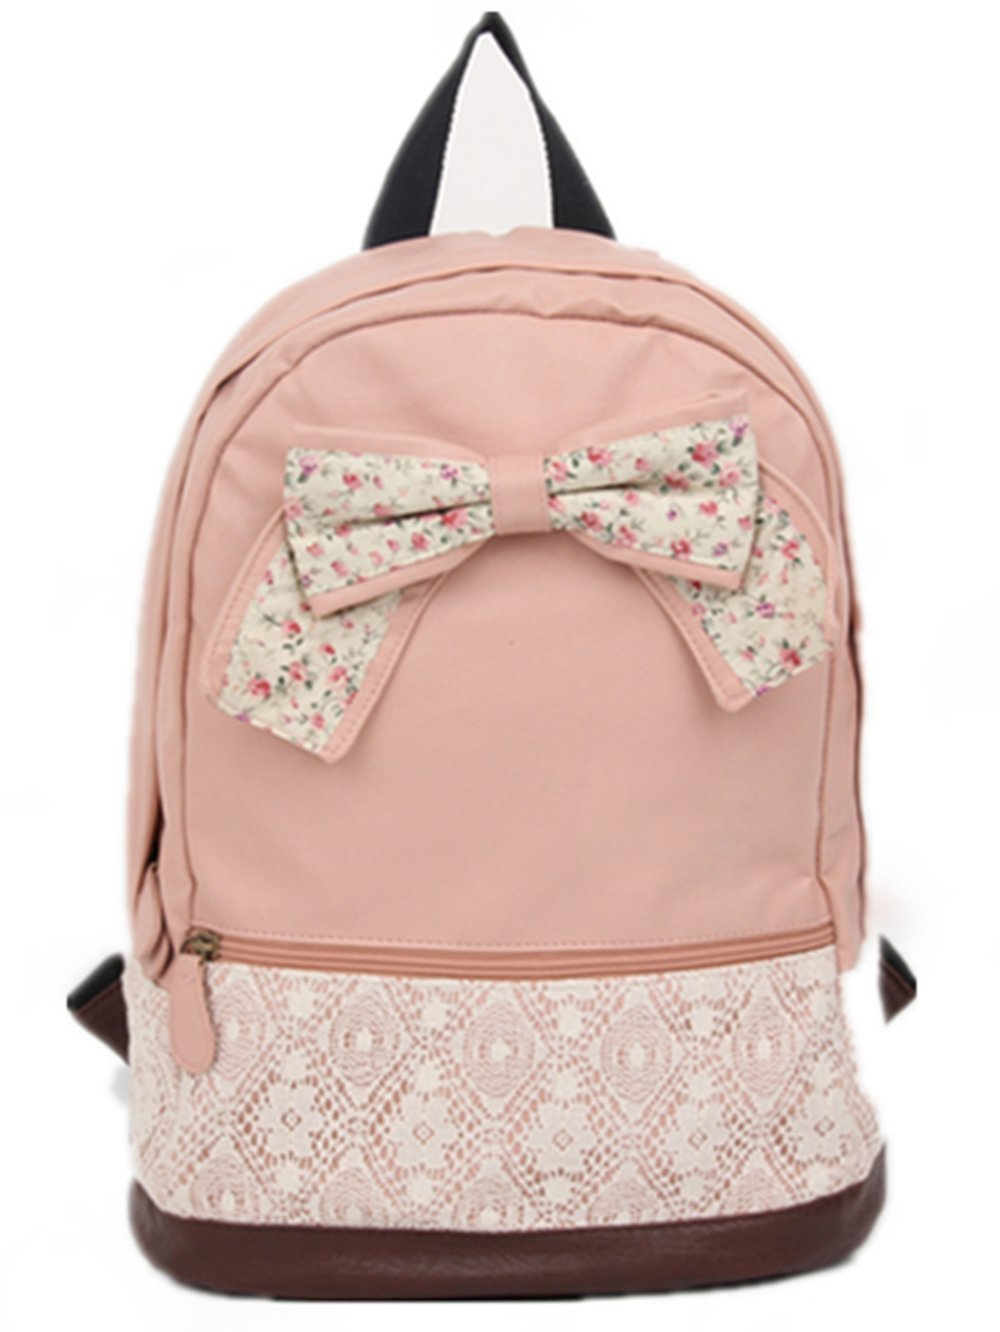 Pretty Backpacks For Girls vskqK7Yt